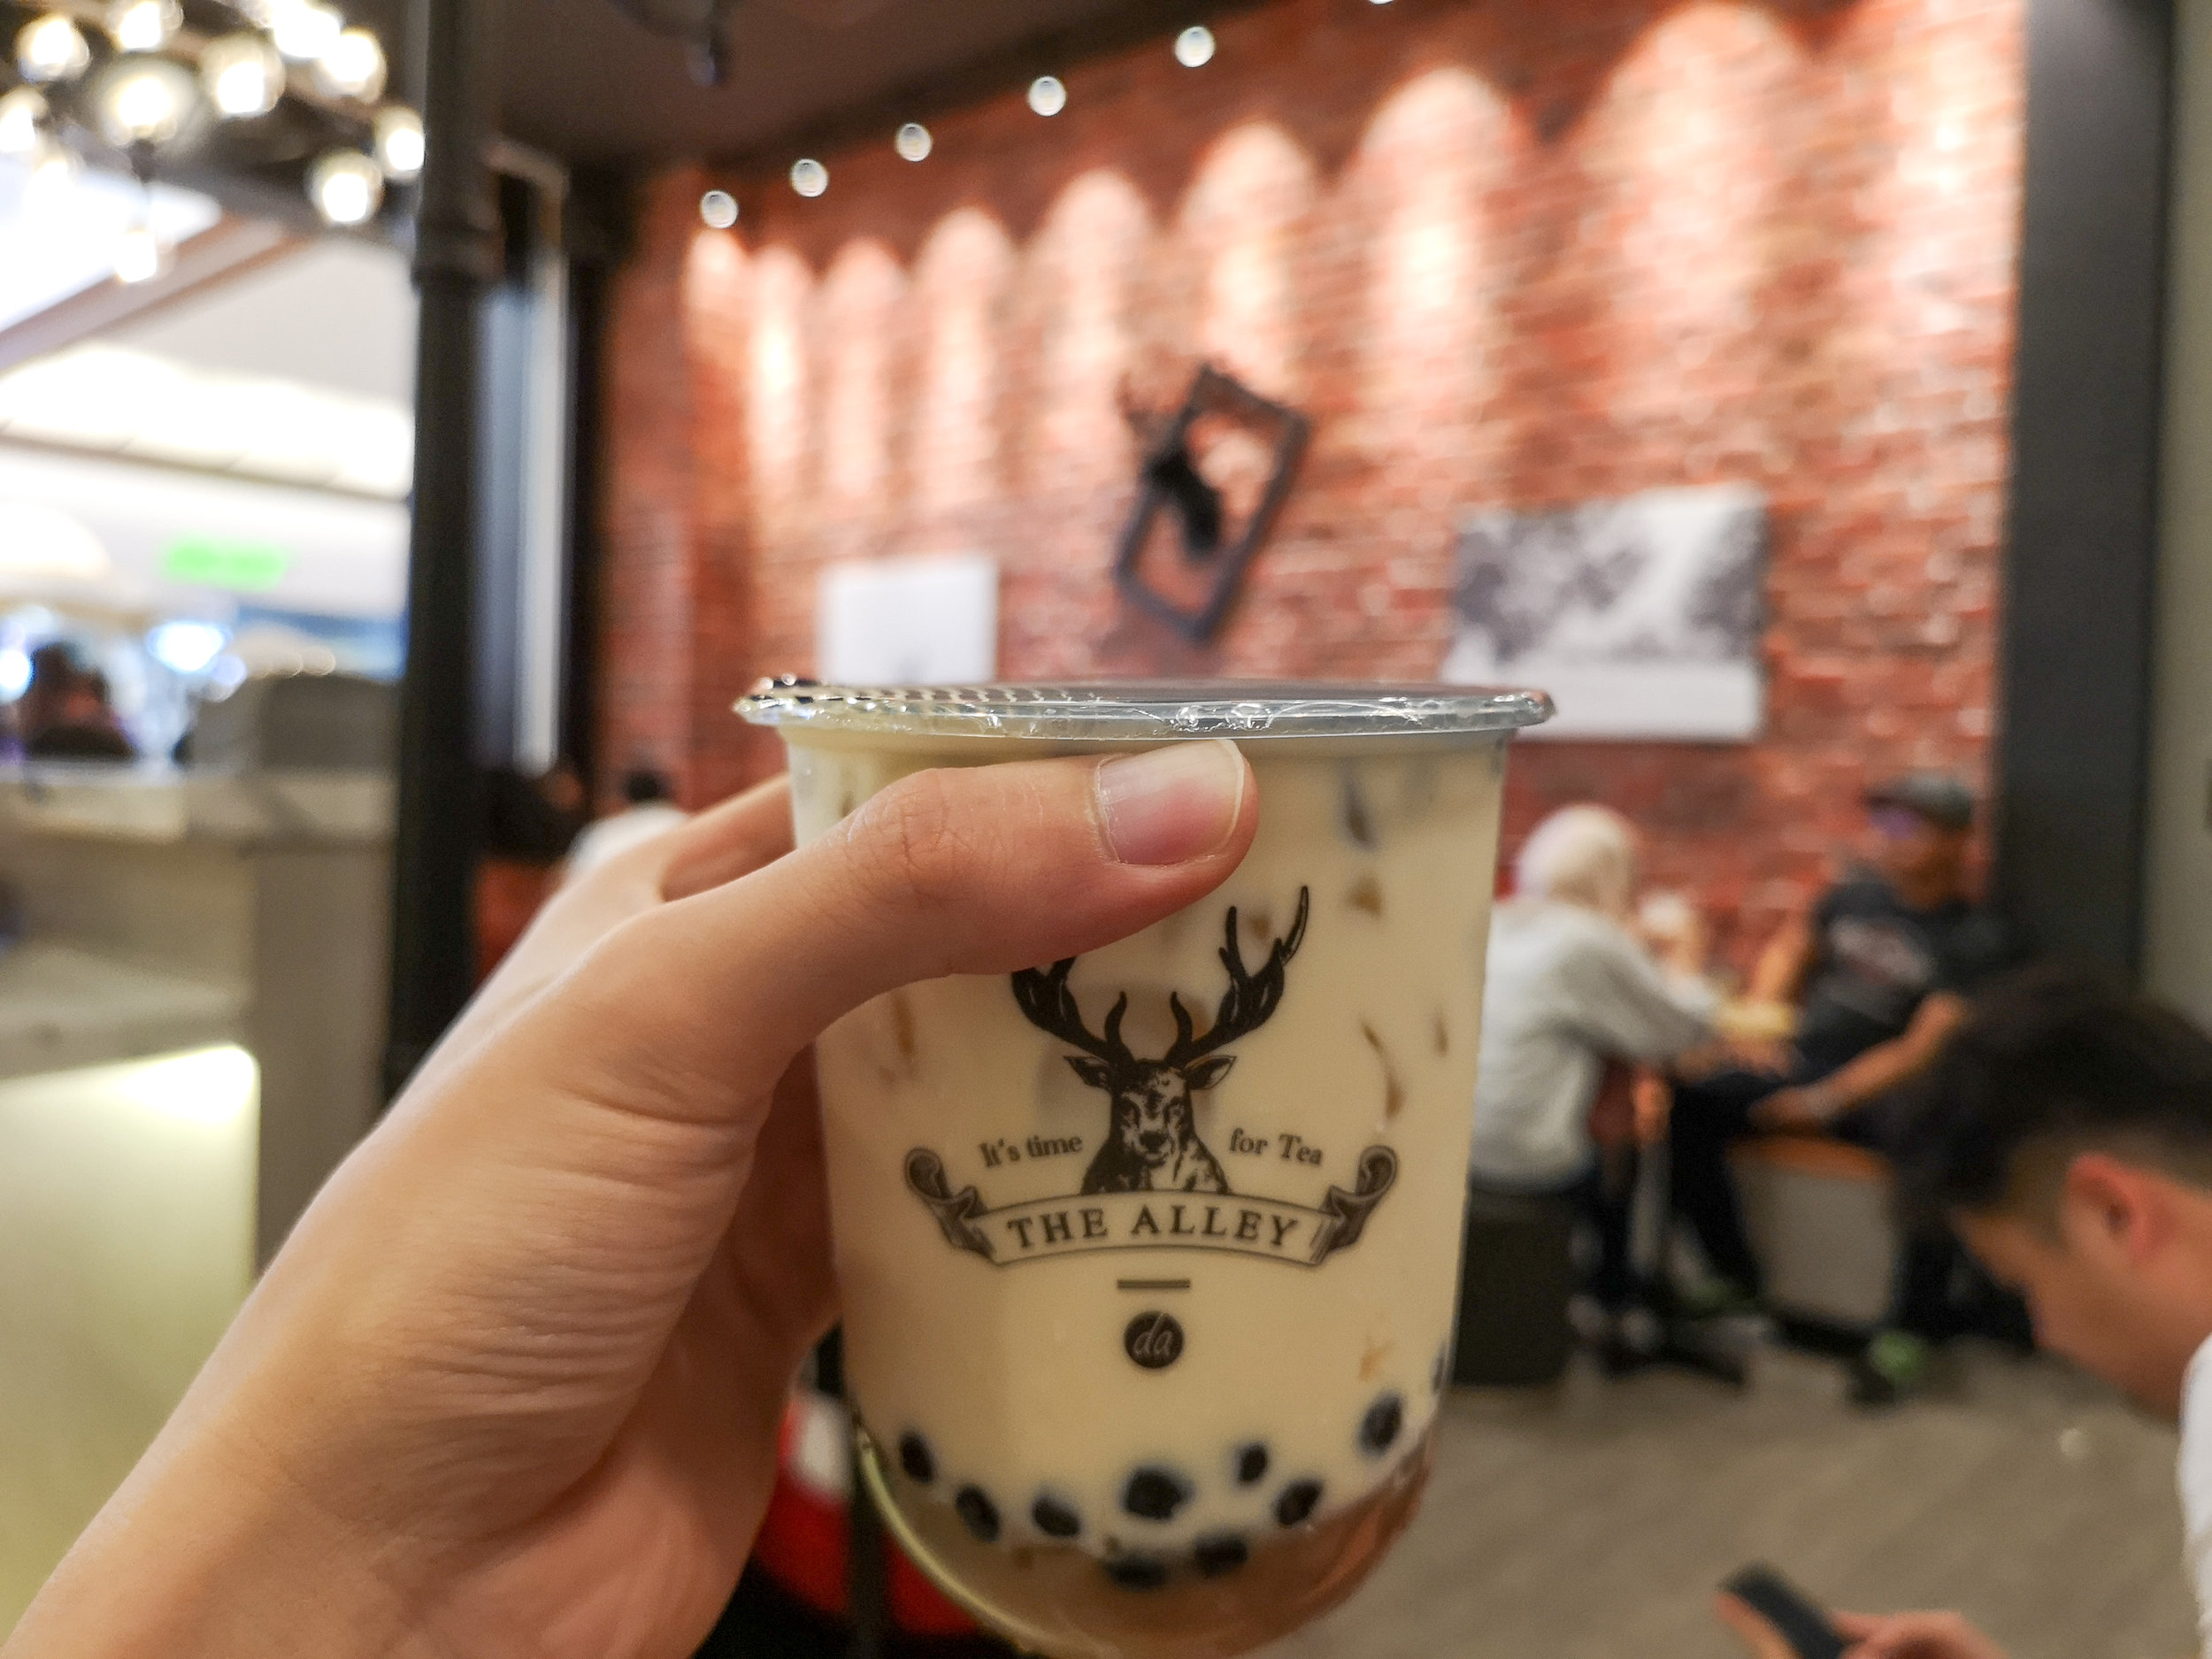 The Alley Little Happiness Milk Tea